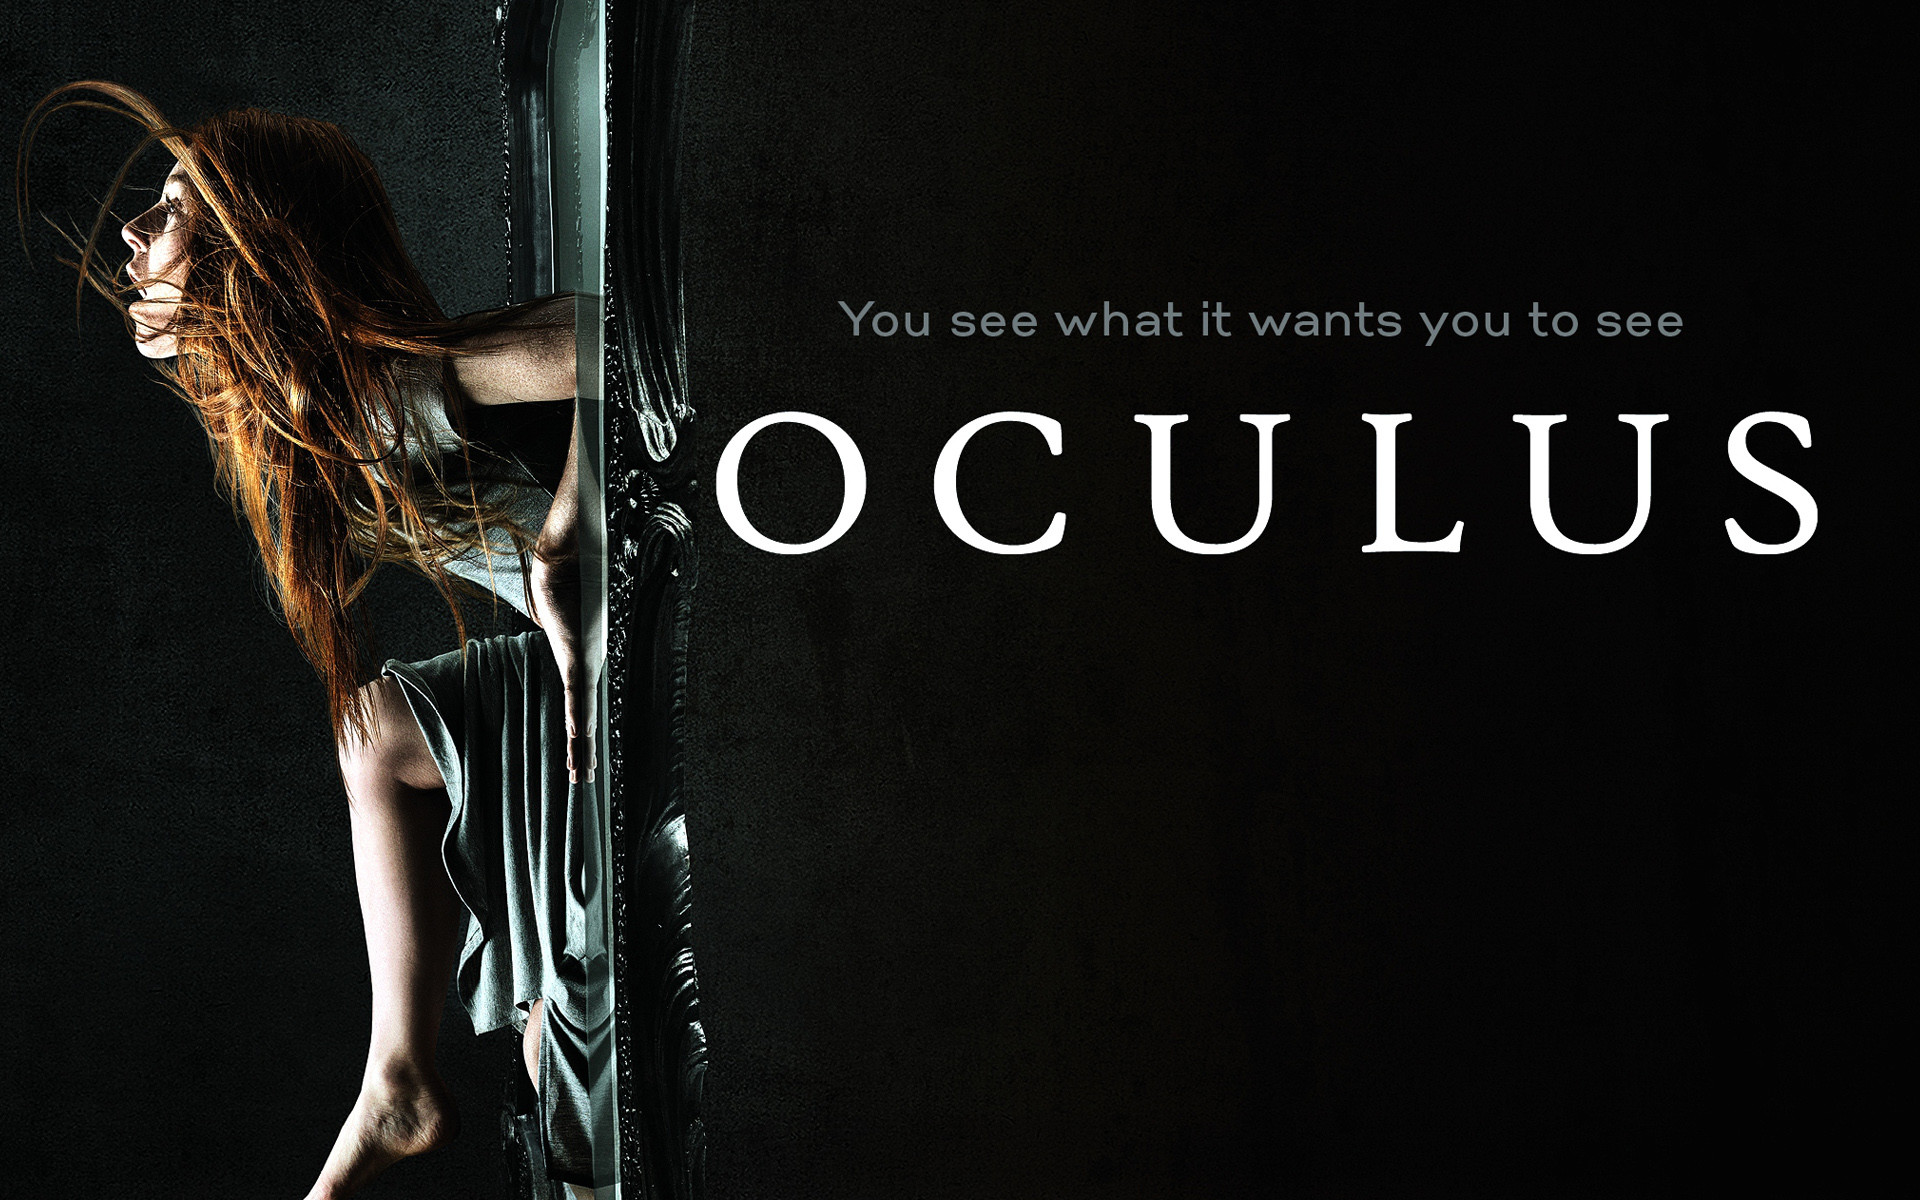 Oculus 2014 Horror Movie Wallpapers | HD Wallpapers